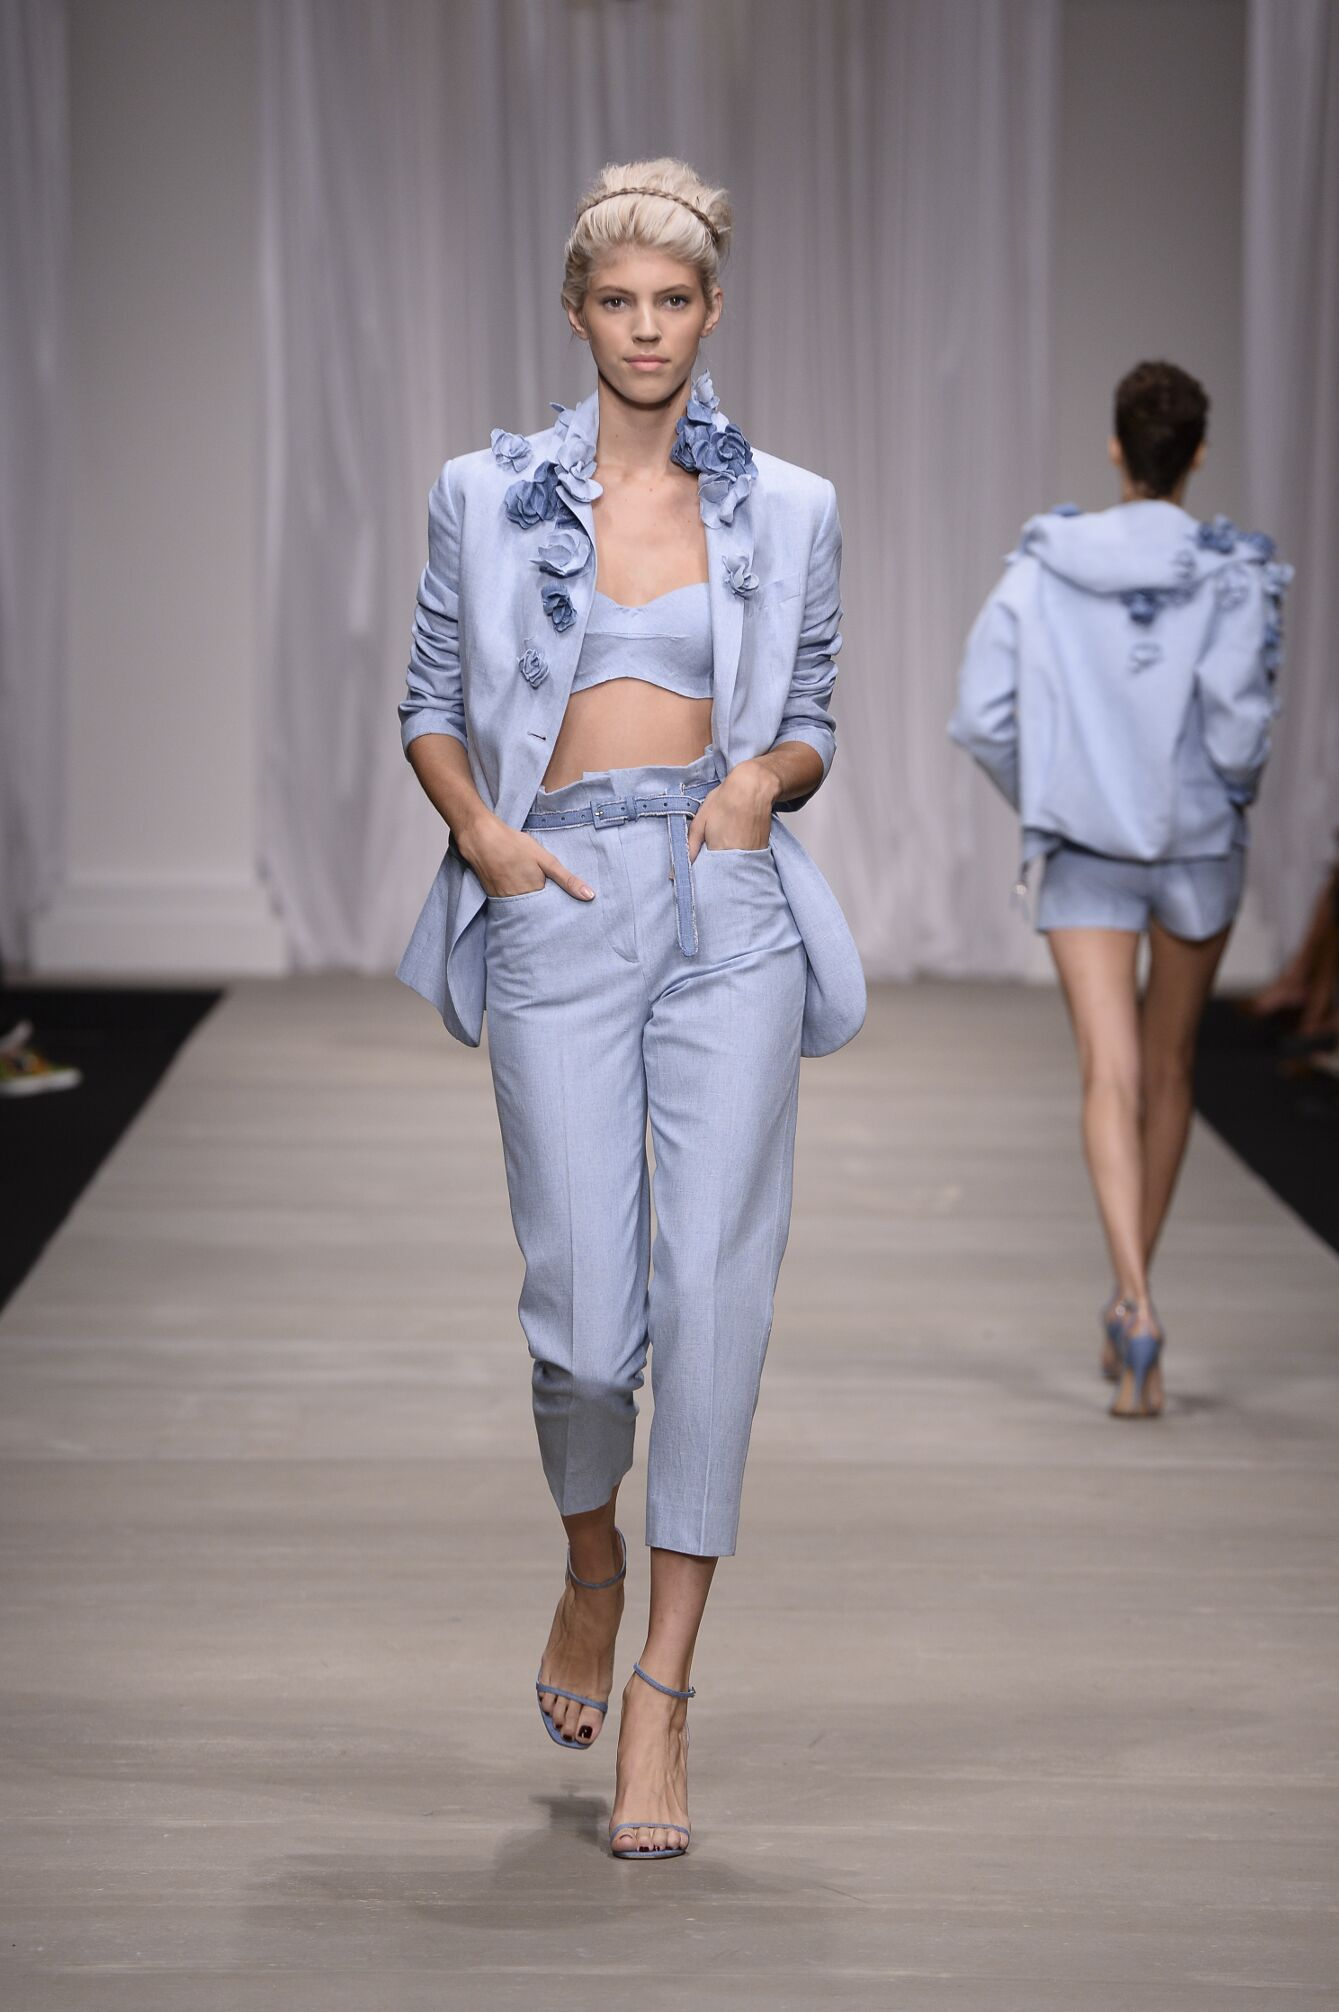 Fashion Model Ermanno Scervino Catwalk